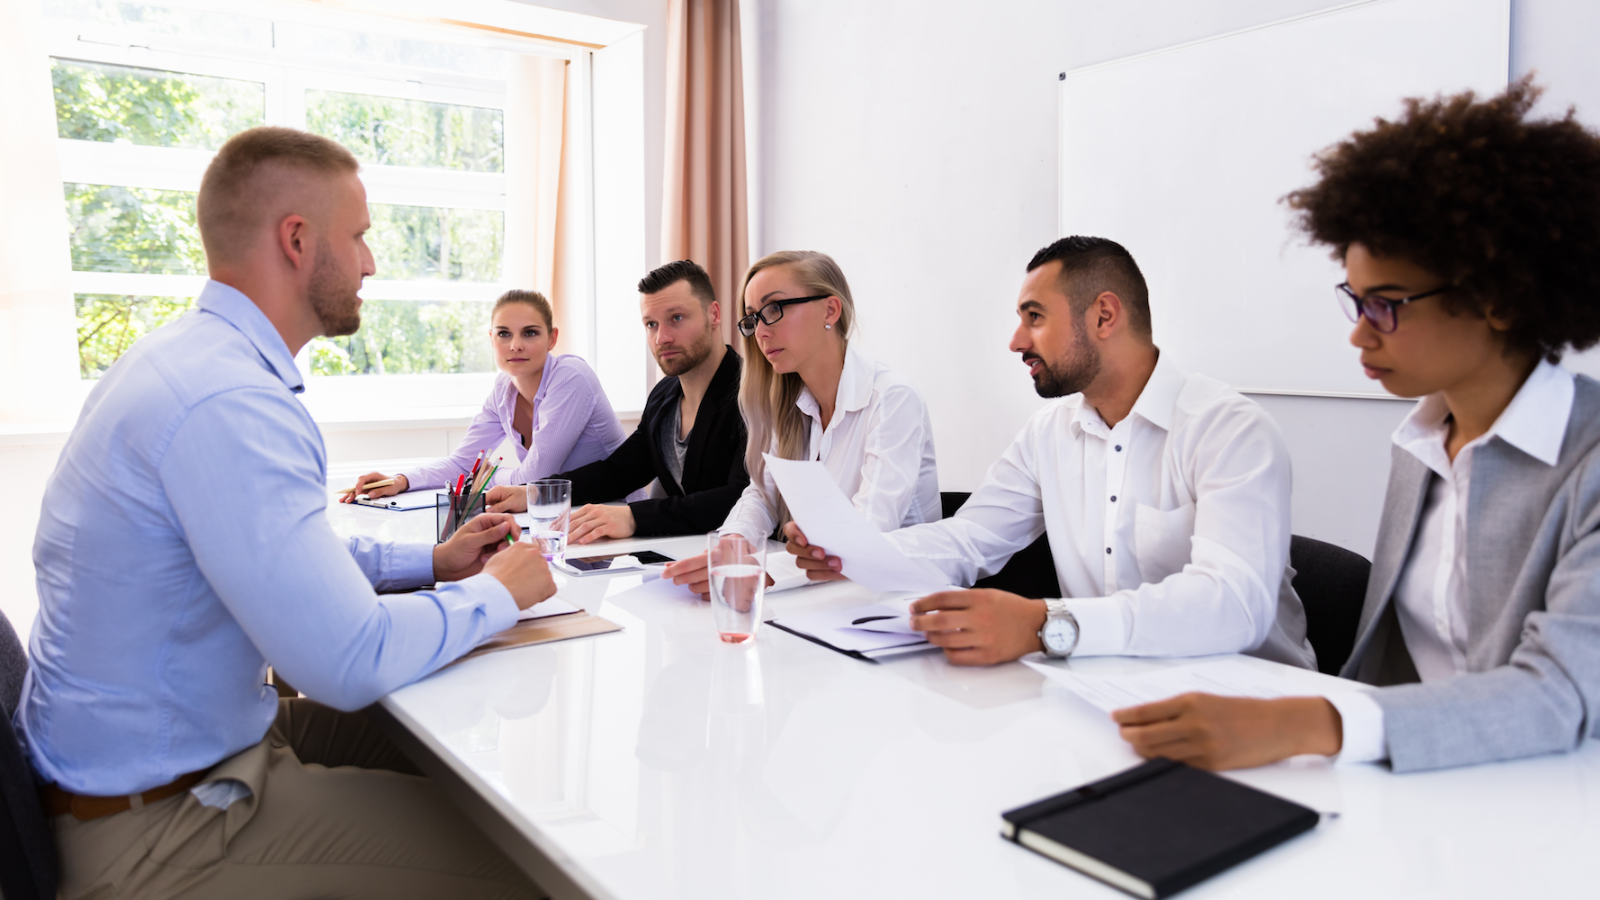 11 things you should never do in a panel interview